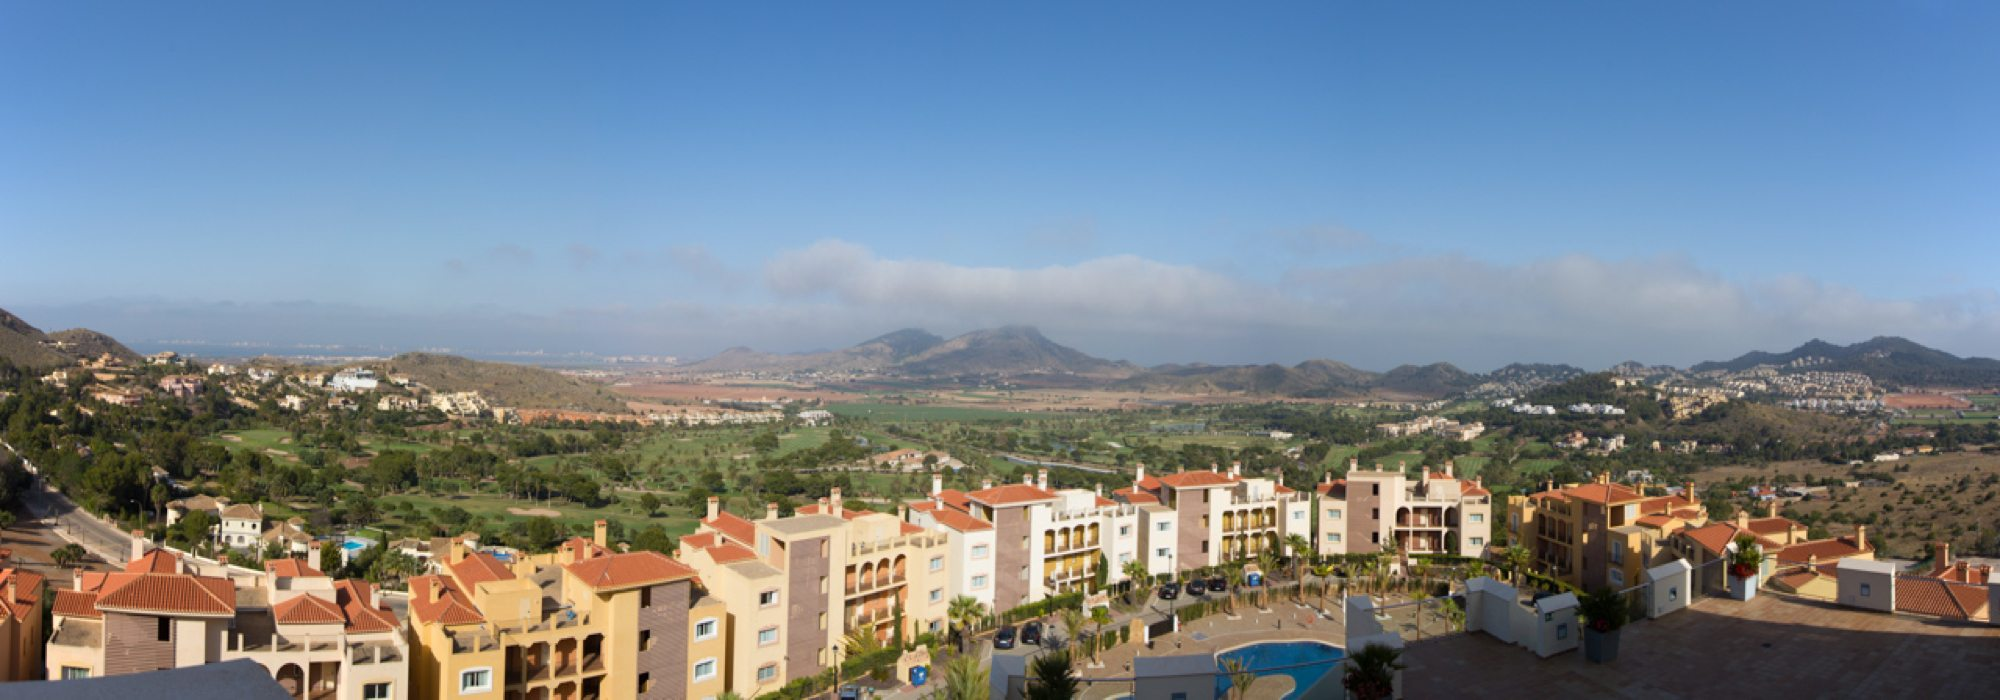 Apartments at La Manga Club Resort from €87,000